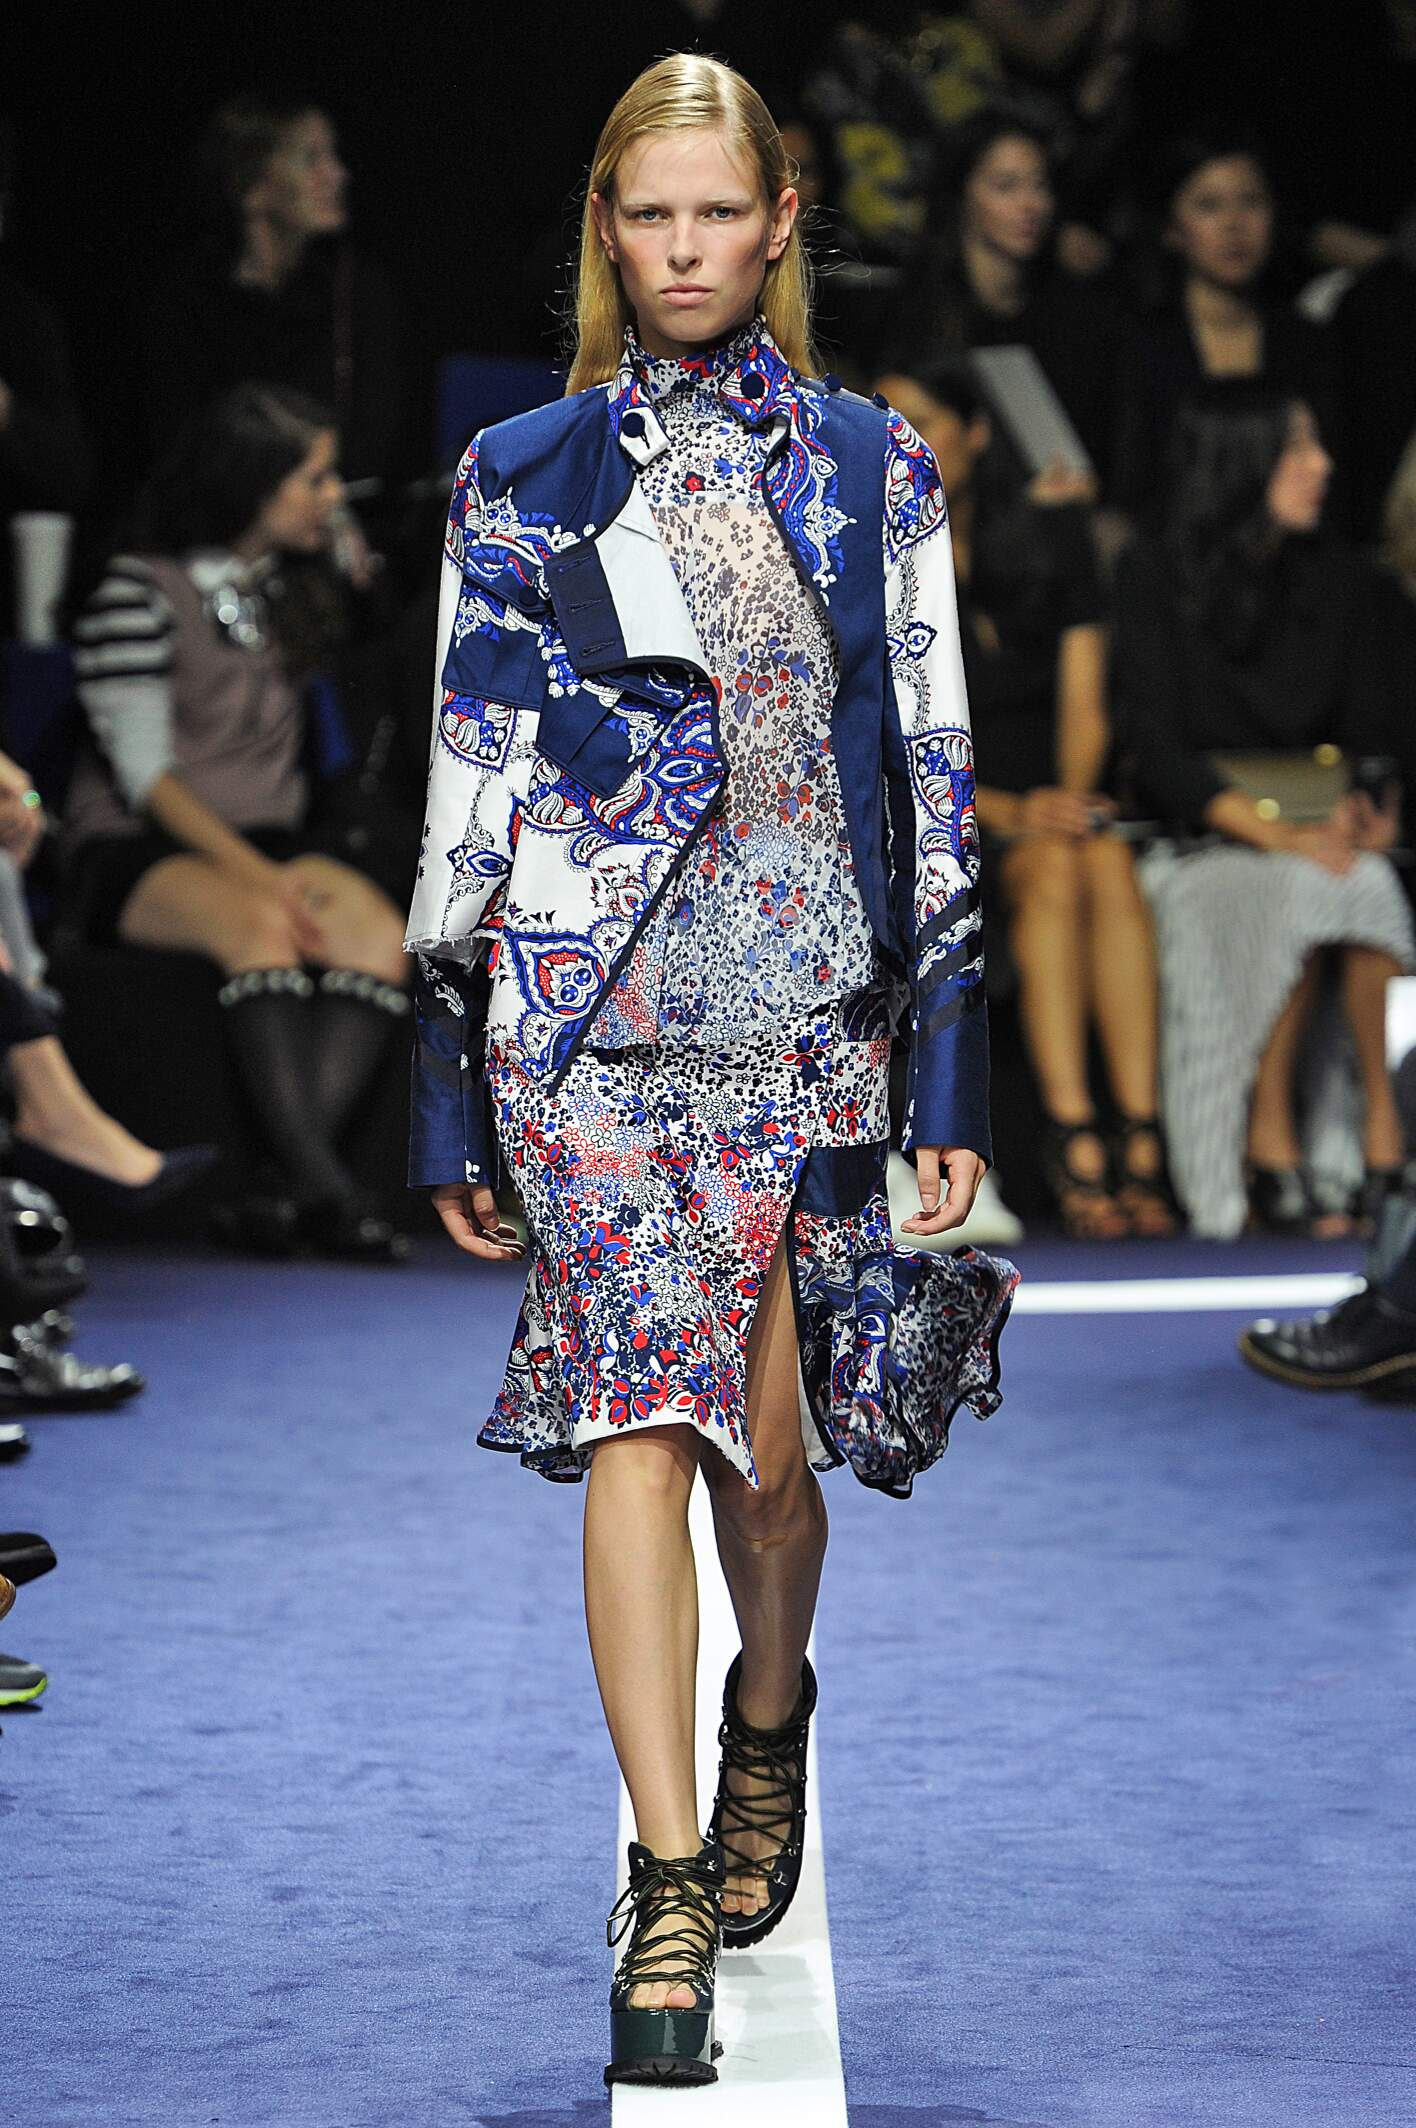 Spring Summer 2015 Fashion Model Sacai